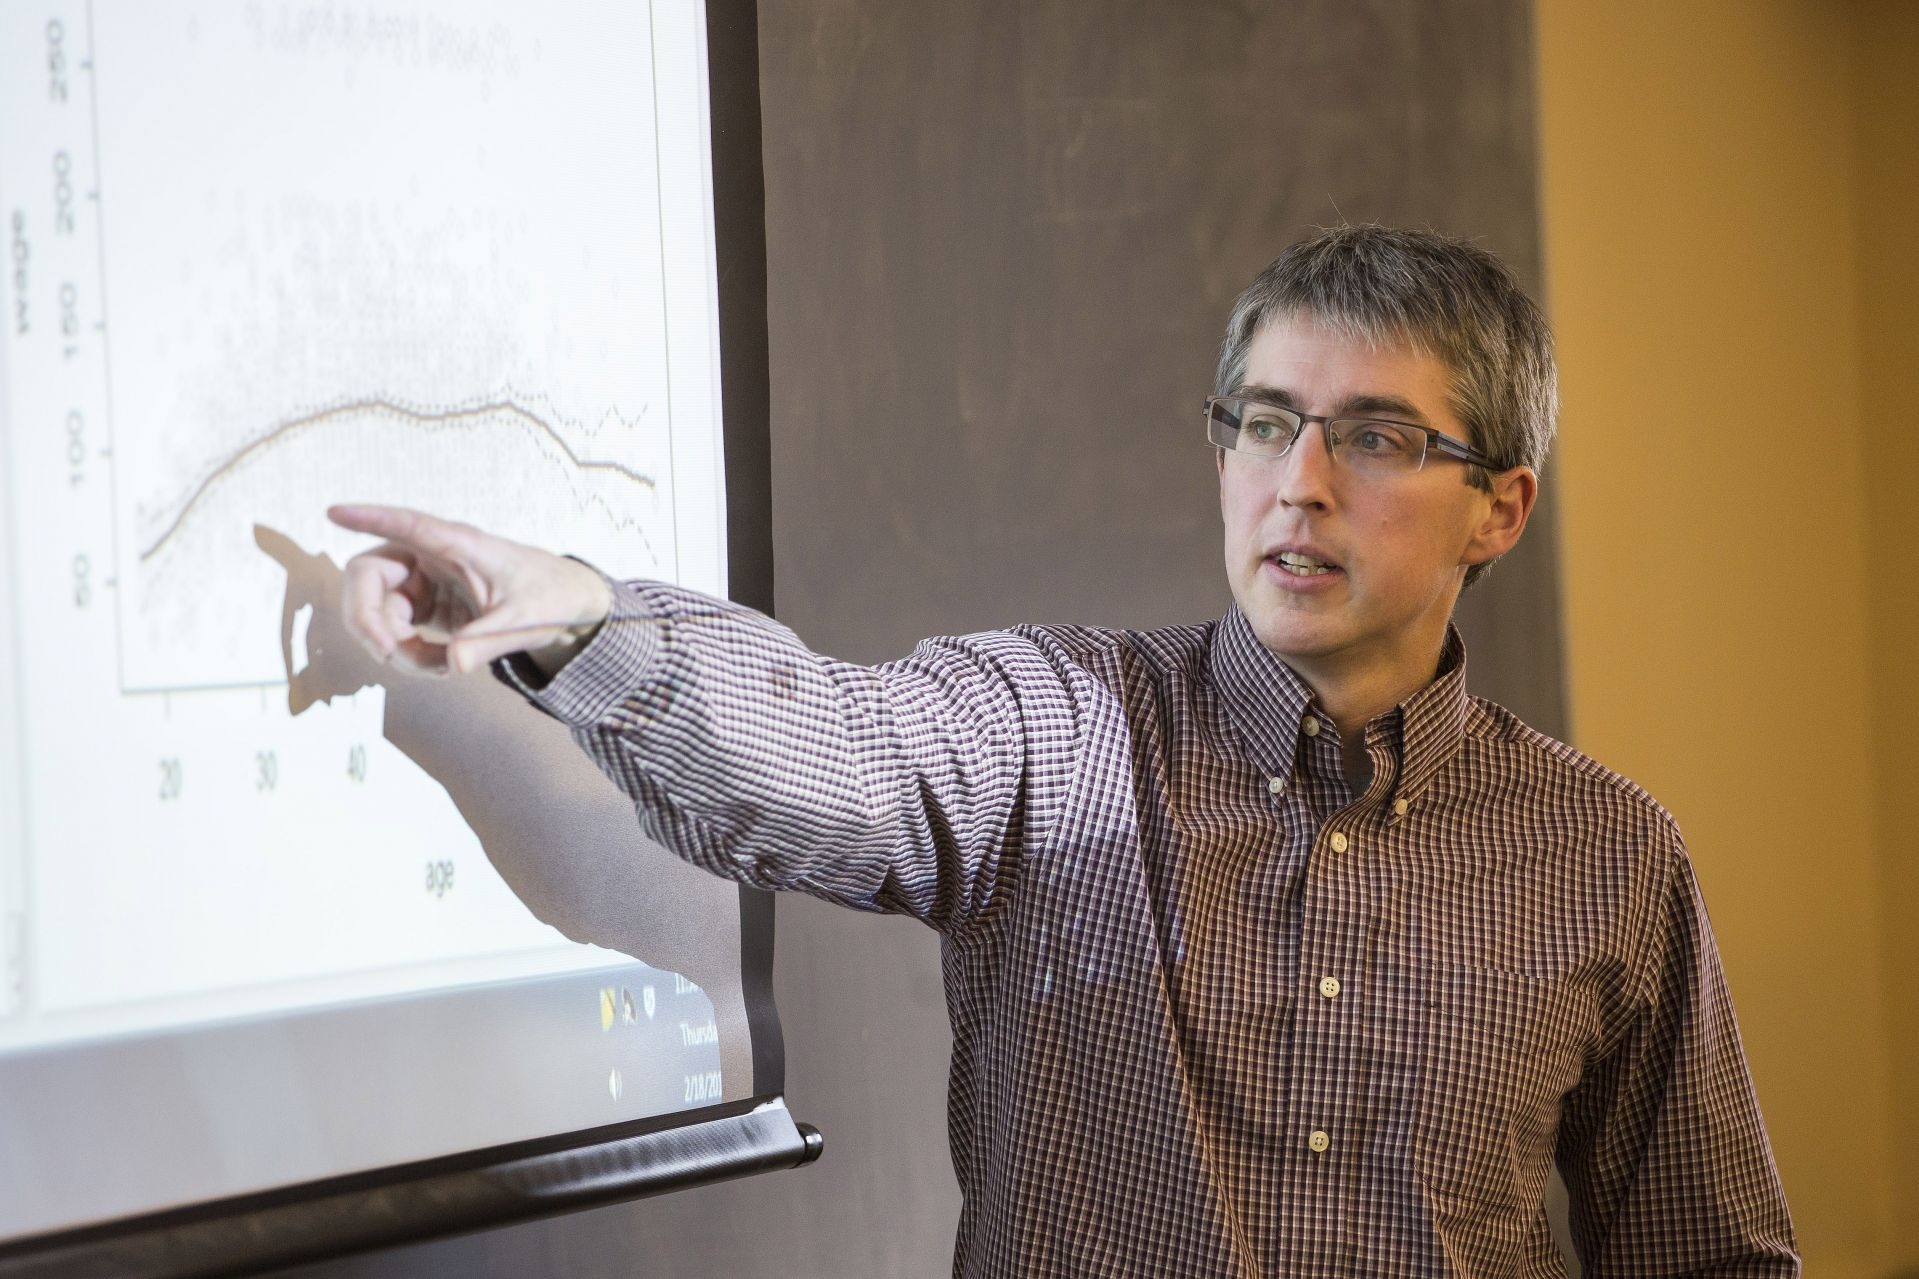 Assistant Professor of Economics Nathan Tefft analyzes equations and data sets in Big Data and Economics on Feb 18, 2016.